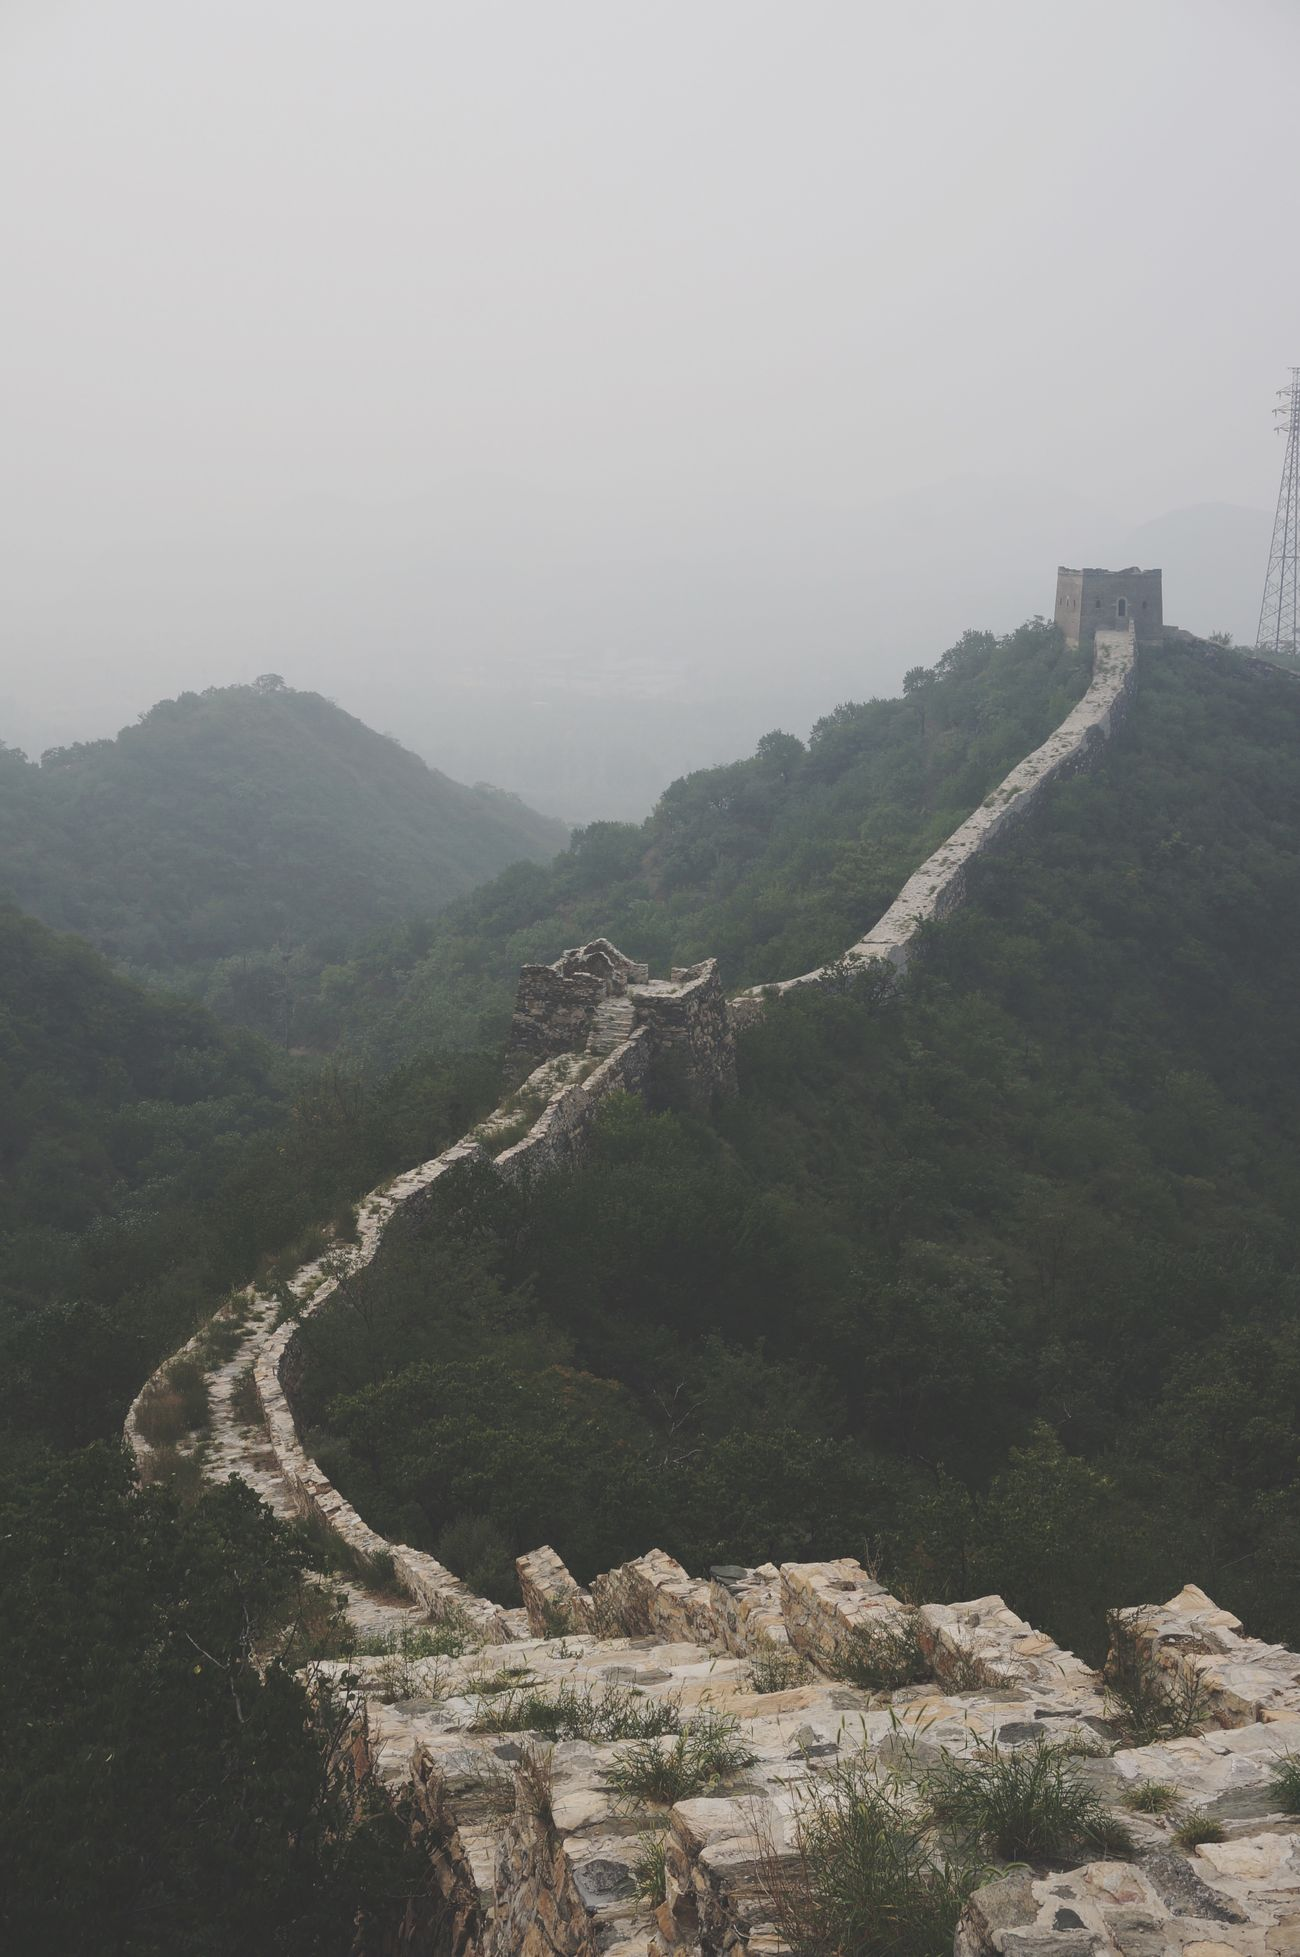 Landscape Great Views Photos 365 Hiking Great Wall Of China The Great Wall Foggy Morning Mountain View